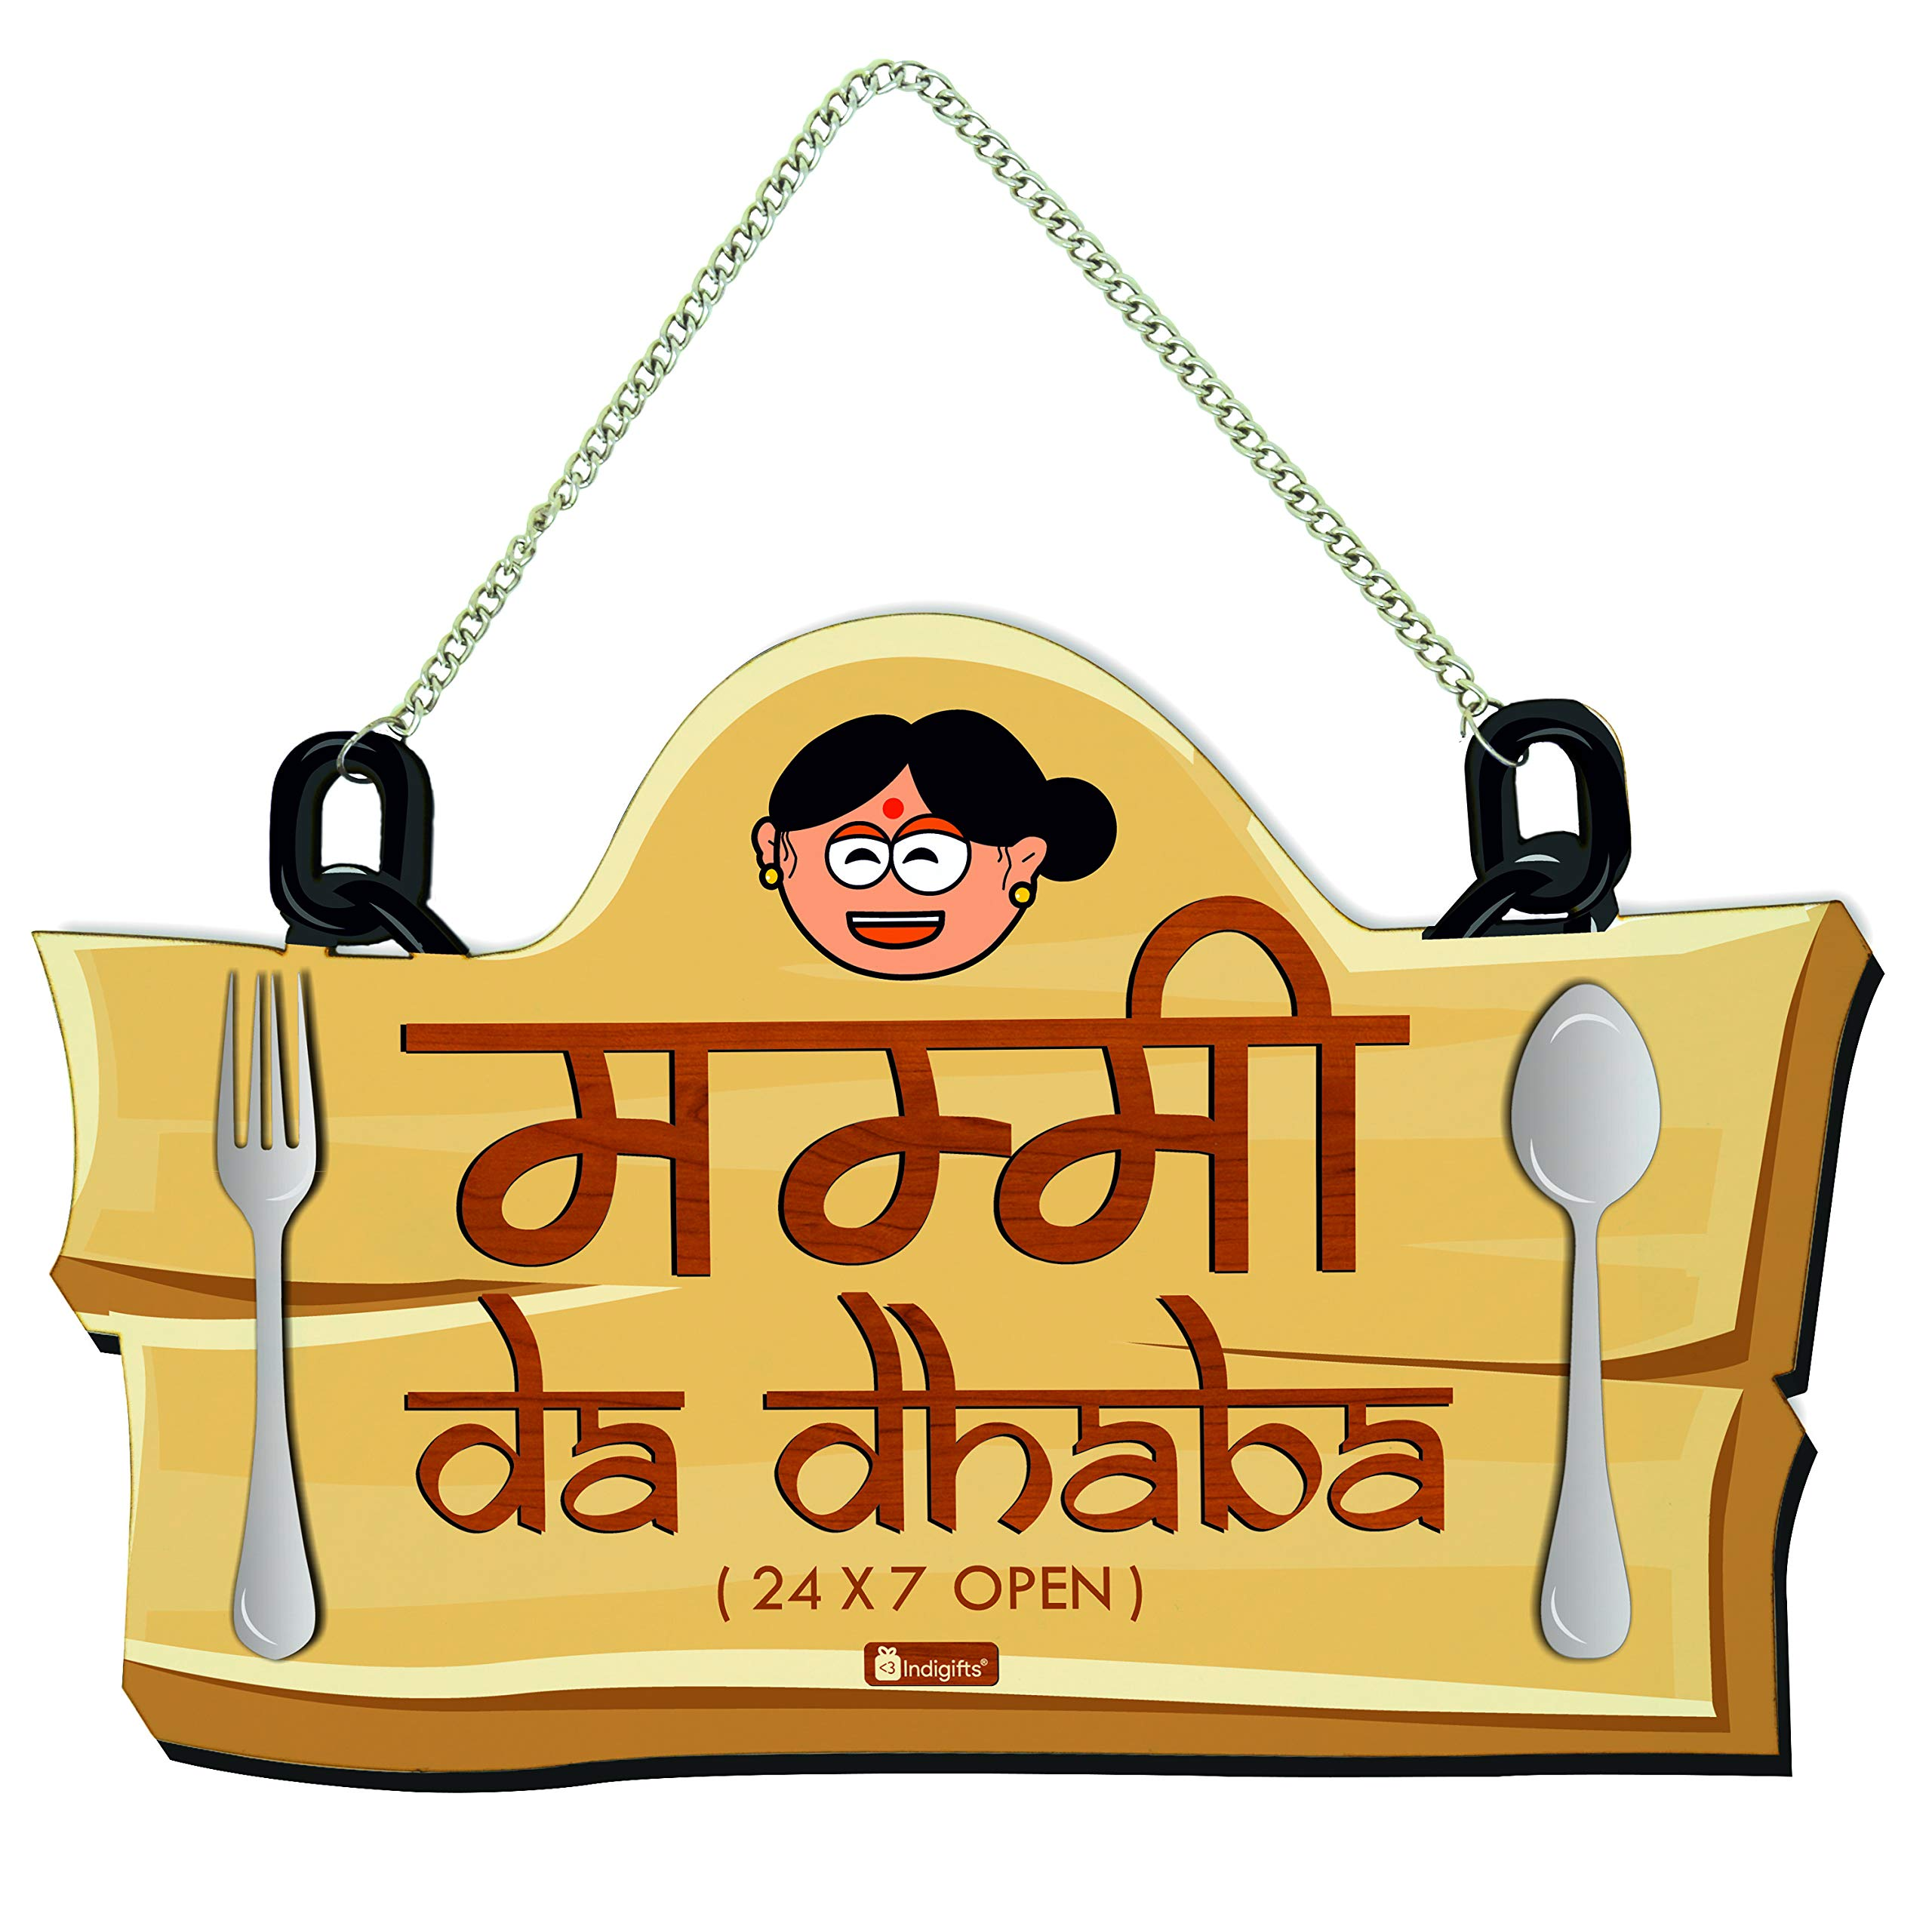 Indigifts Mummy Da Dhaba Brown Wall Hanging 8X12.5 Inches - Mom-Mummy-Maa-Birthday, Kitchen Door Sign, Cute Designer Gift for Mom, for Parents product image